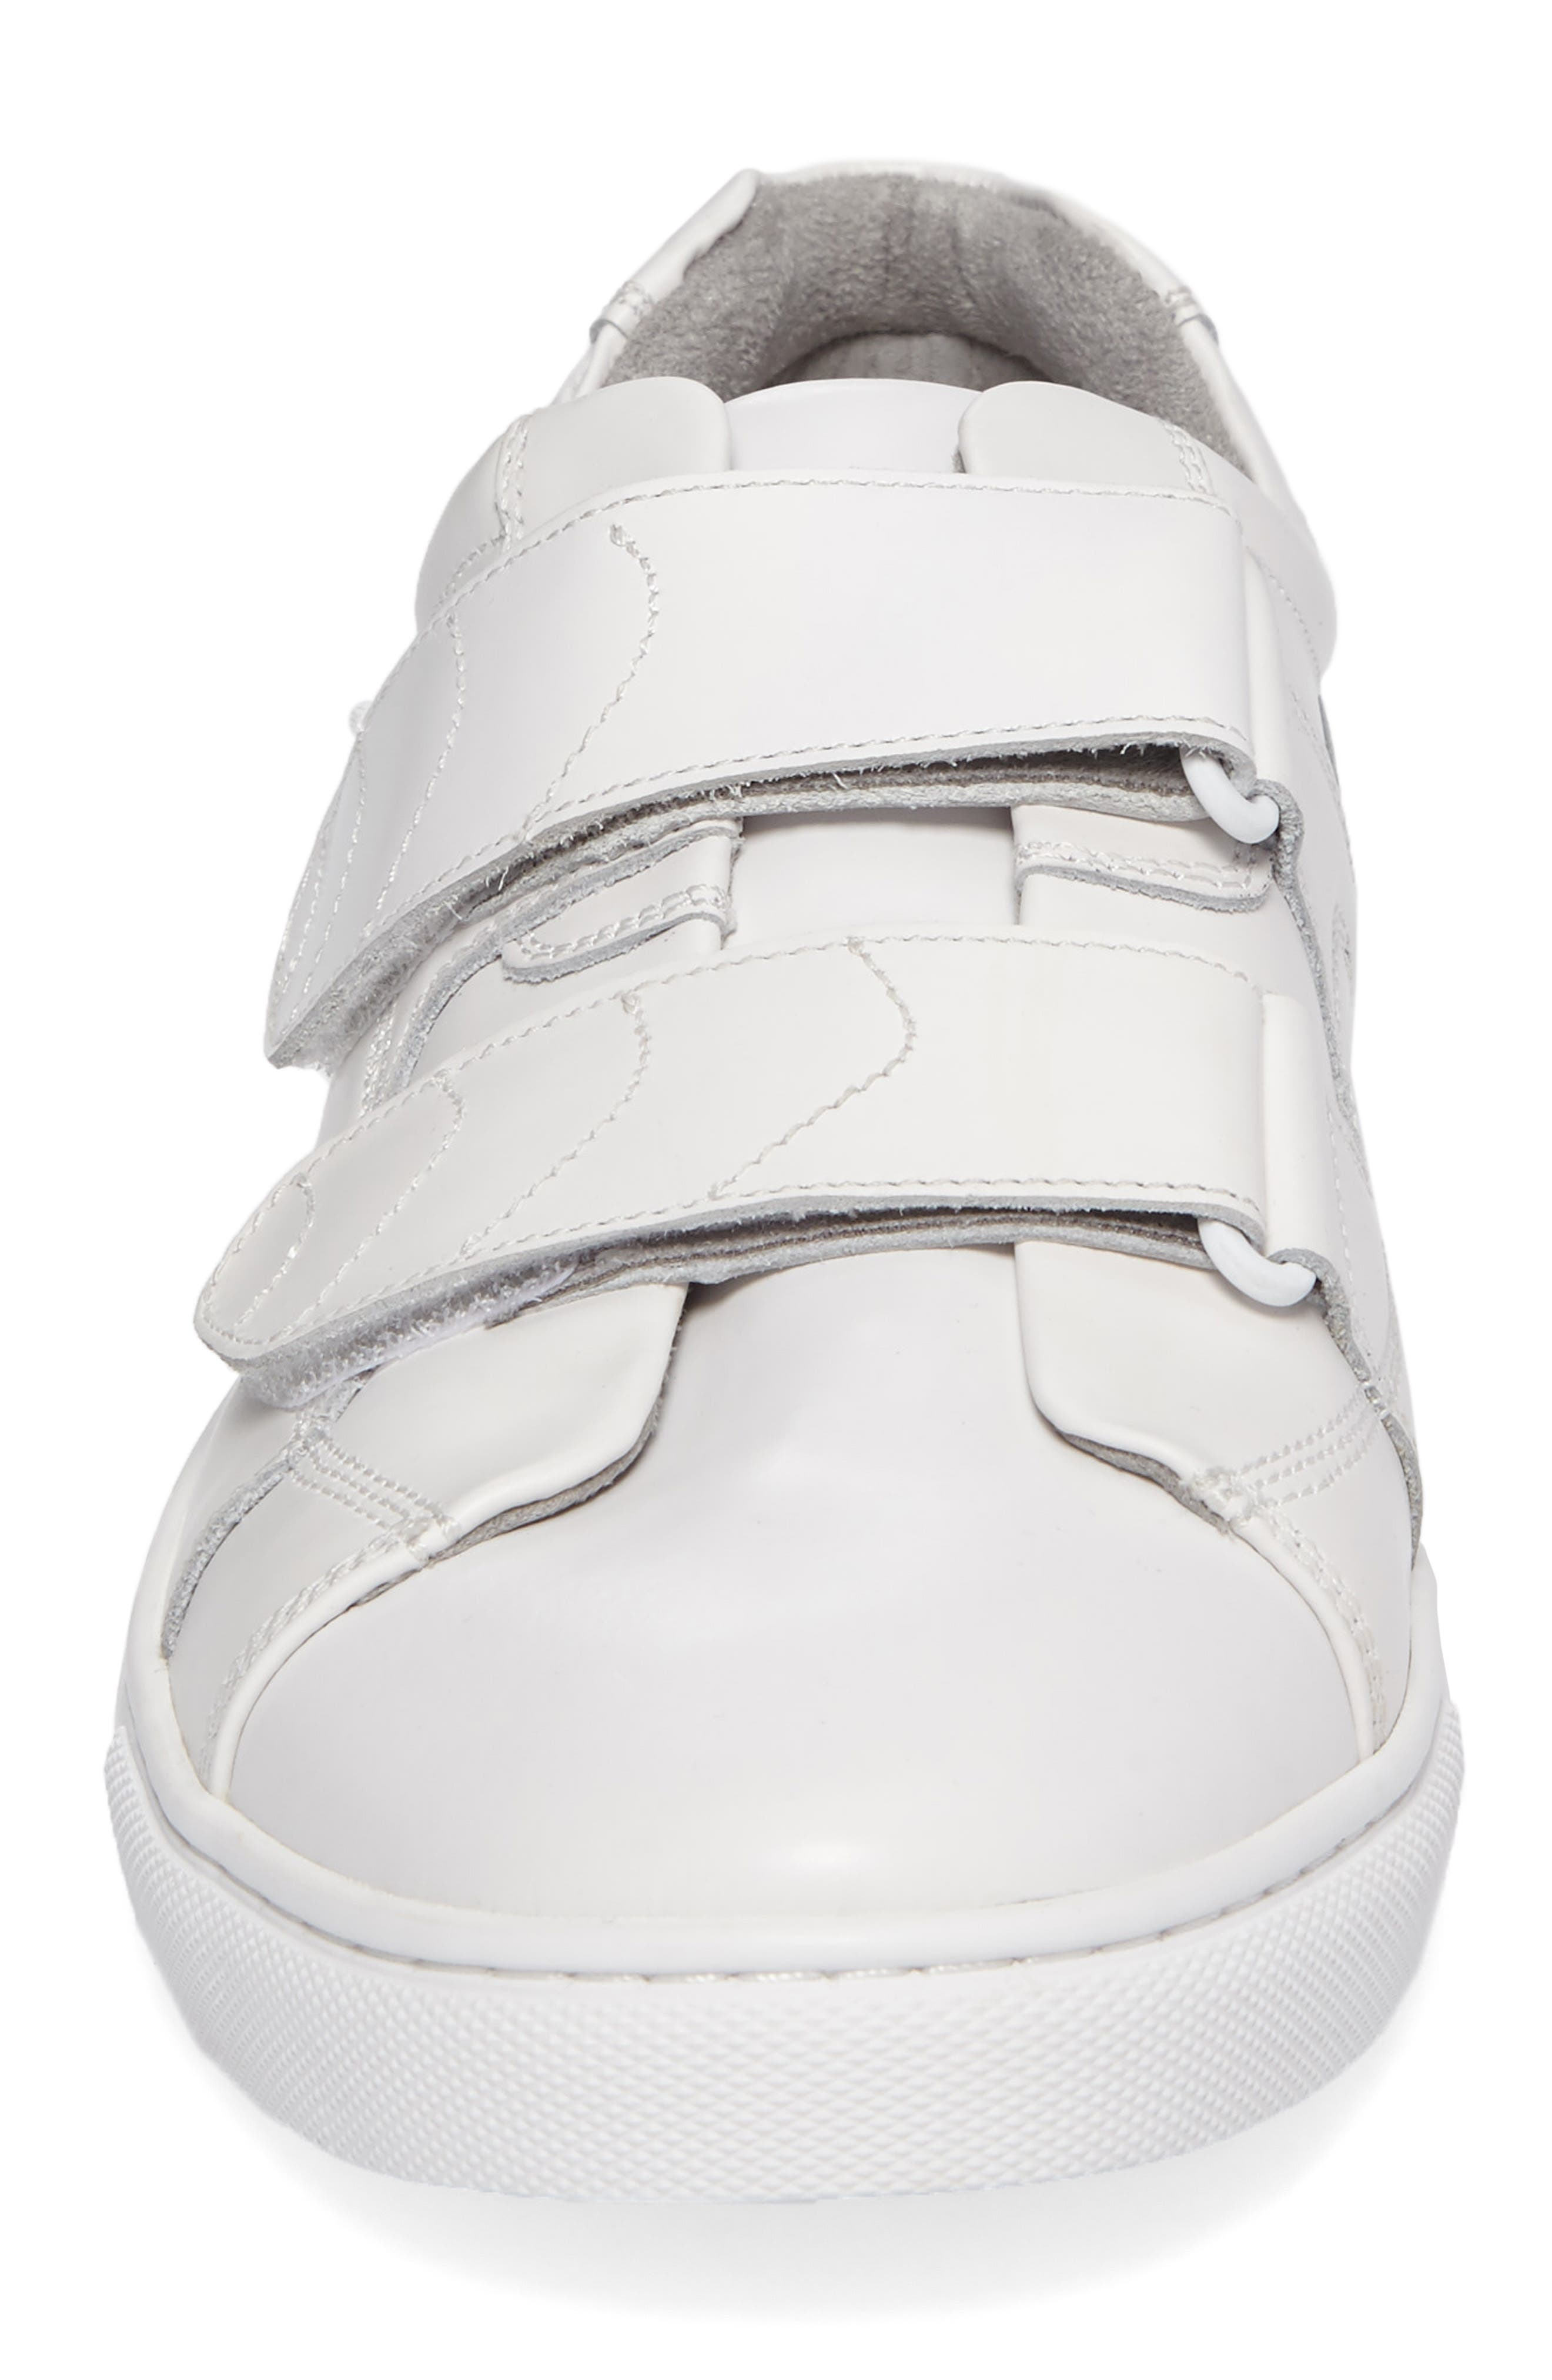 Alternate Image 4  - Kenneth Cole New York Low Top Sneaker (Men)